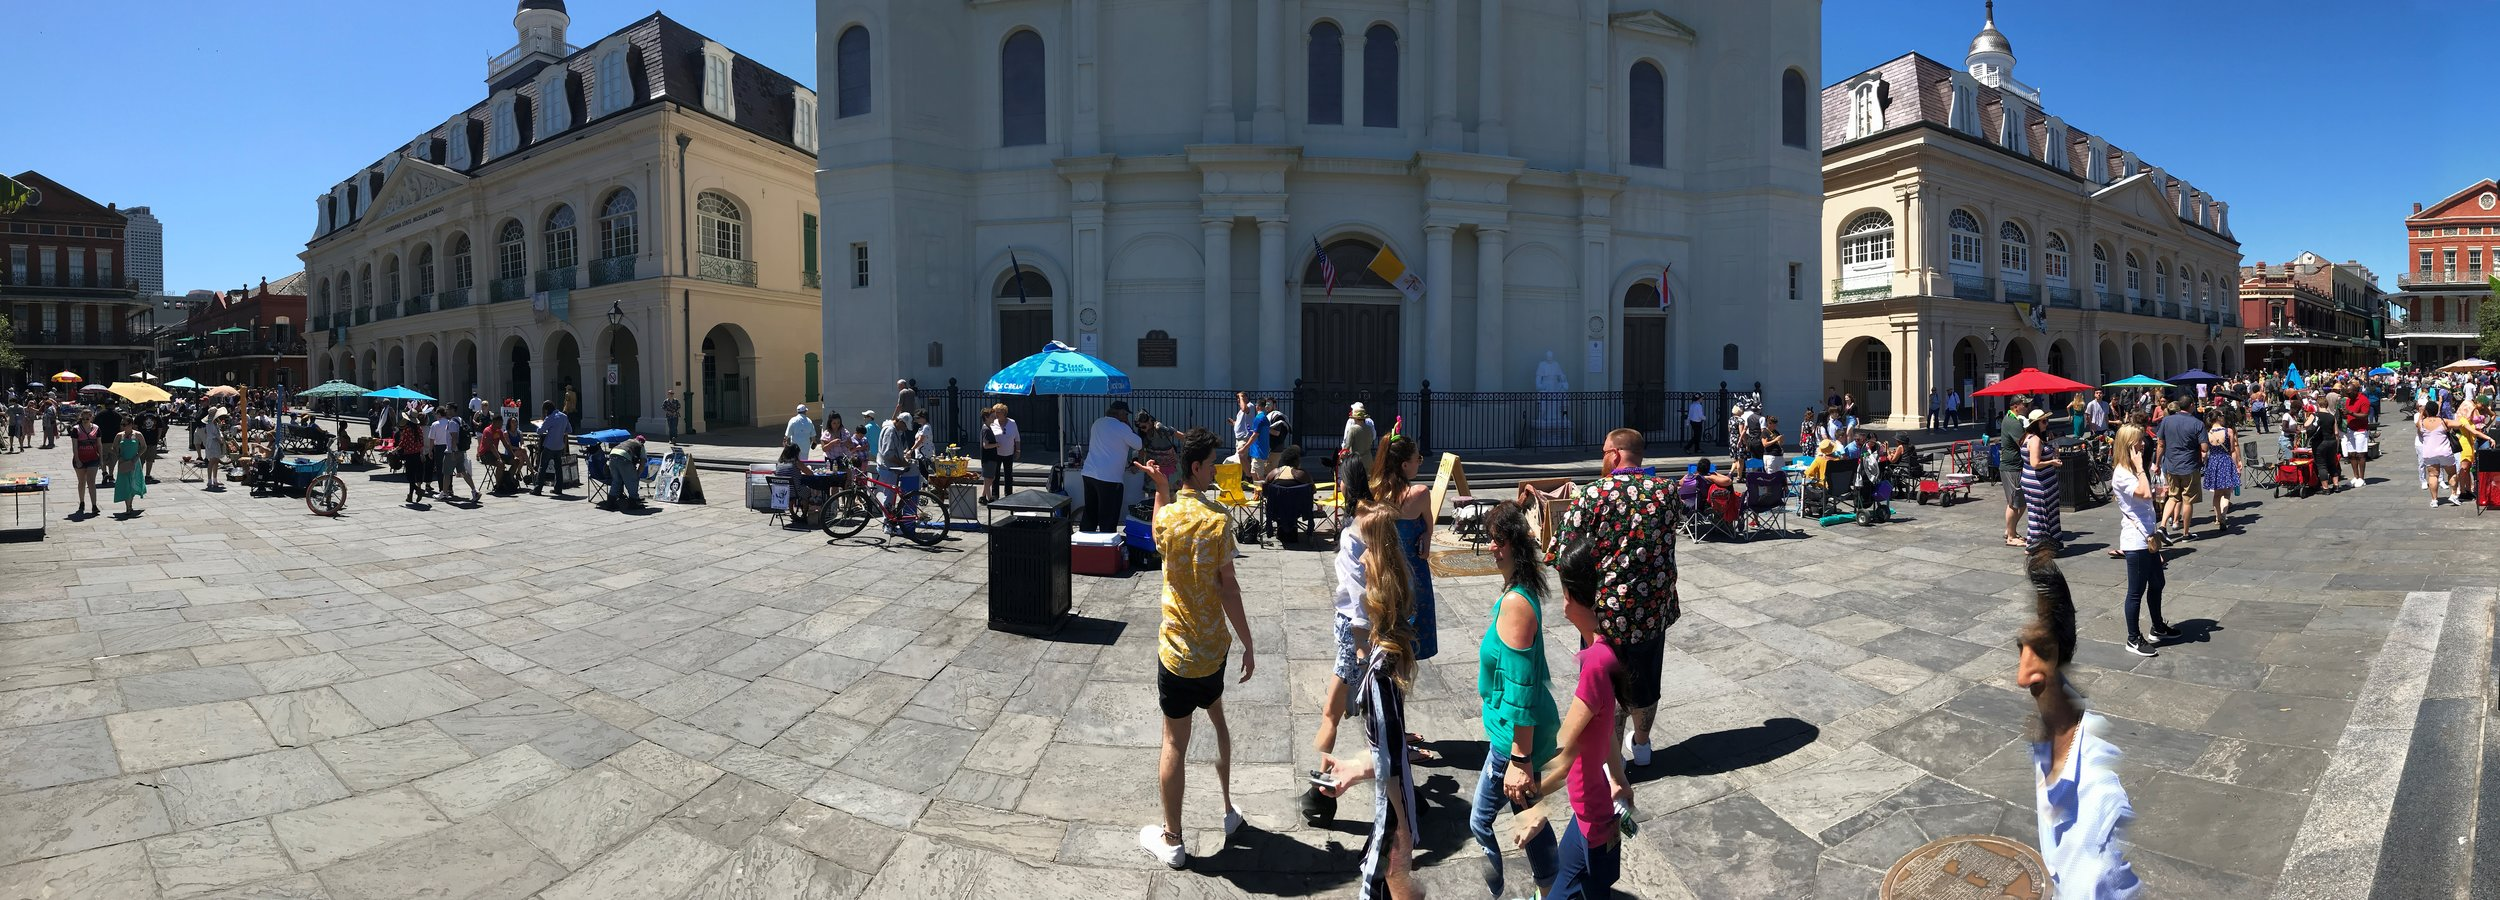 Panoramic of St. Louis Cathedral